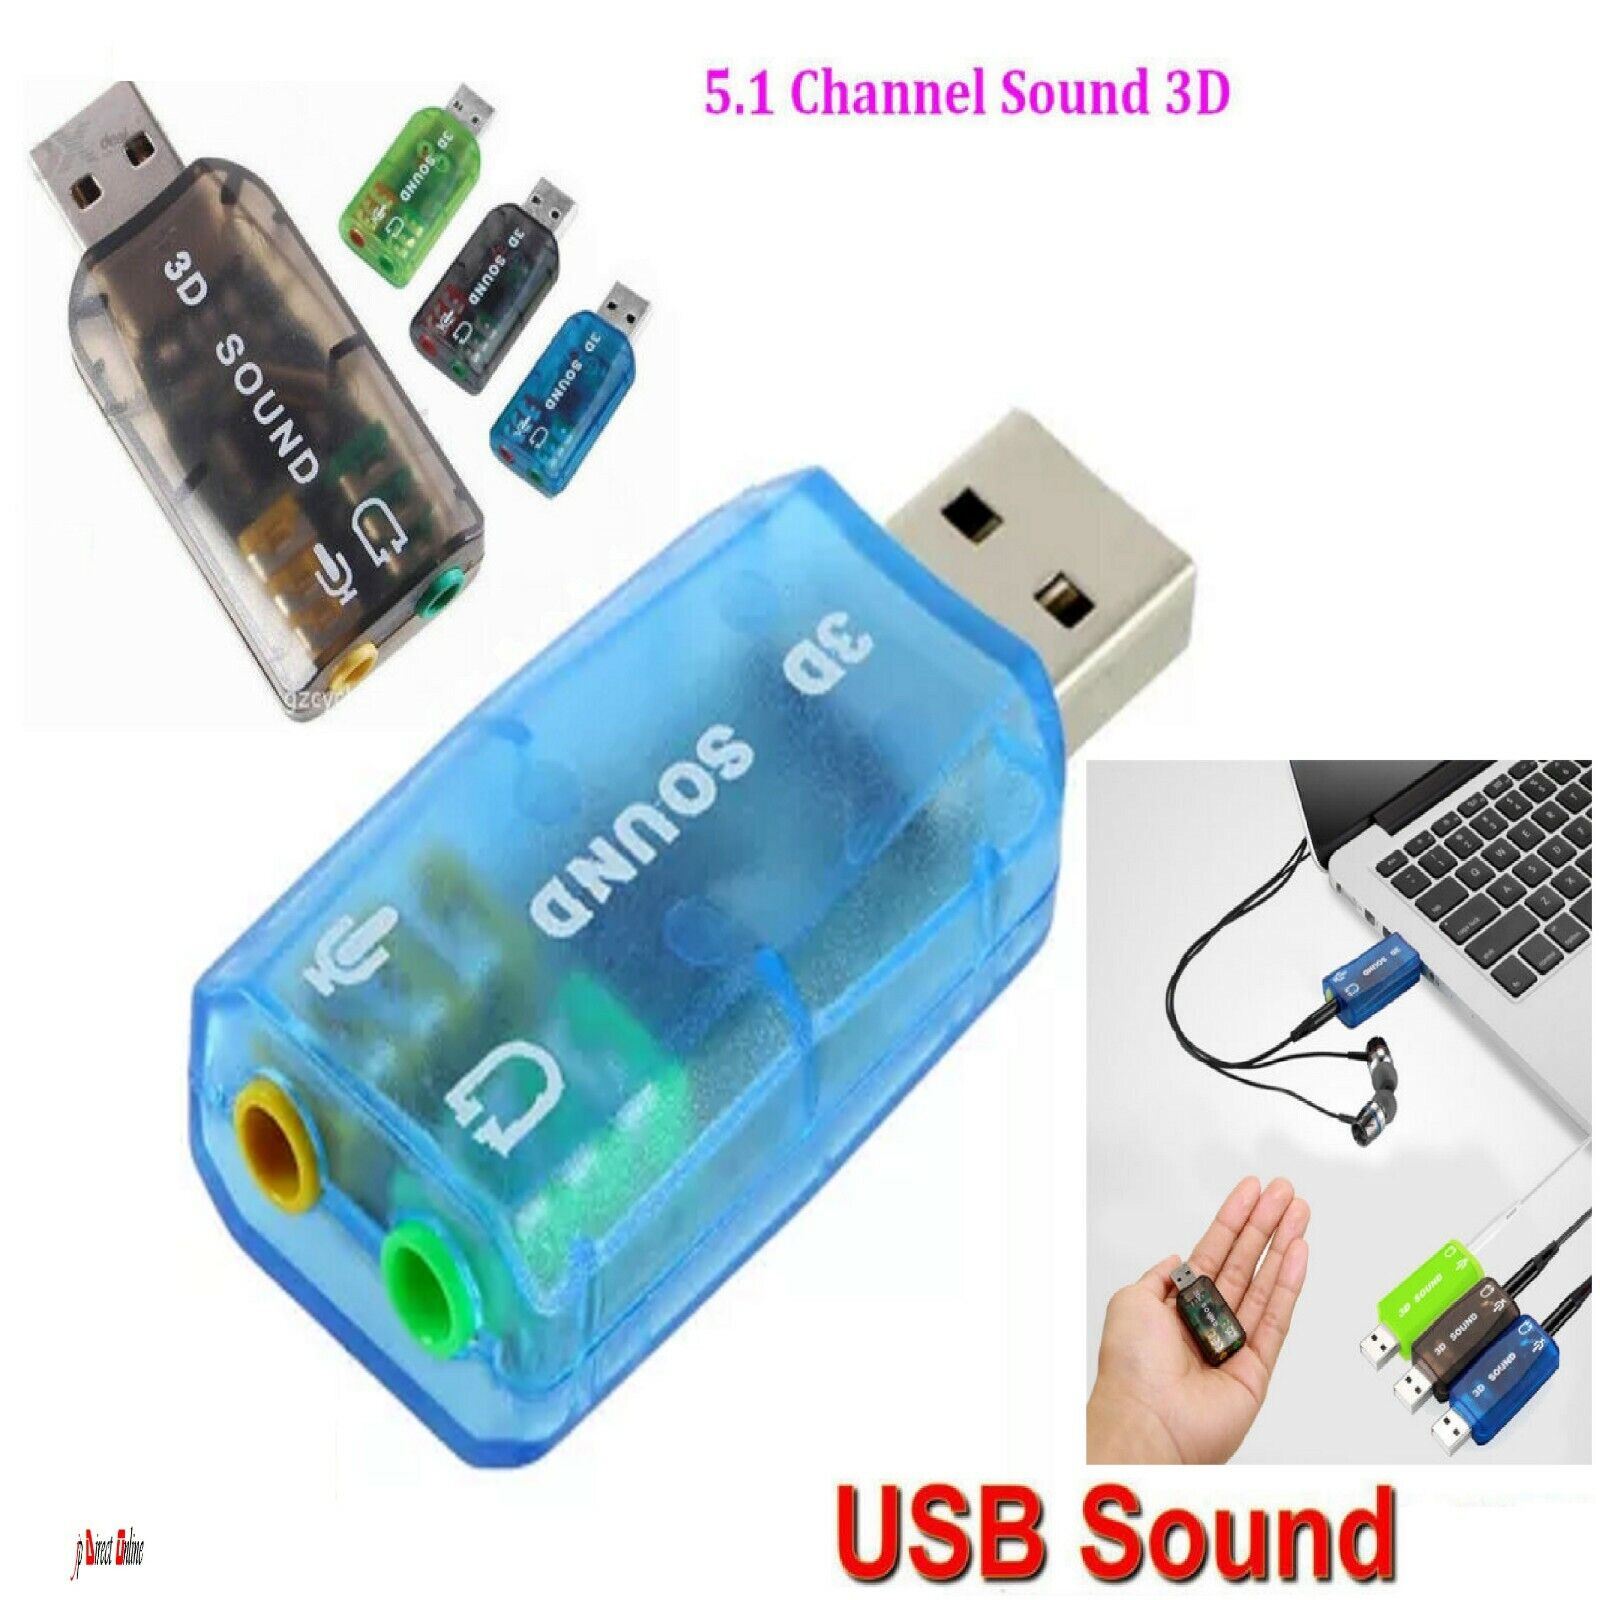 USB 5.1 to 3.5mm mic headphone Jack Headset 3D Sound Card Audio Adapter New